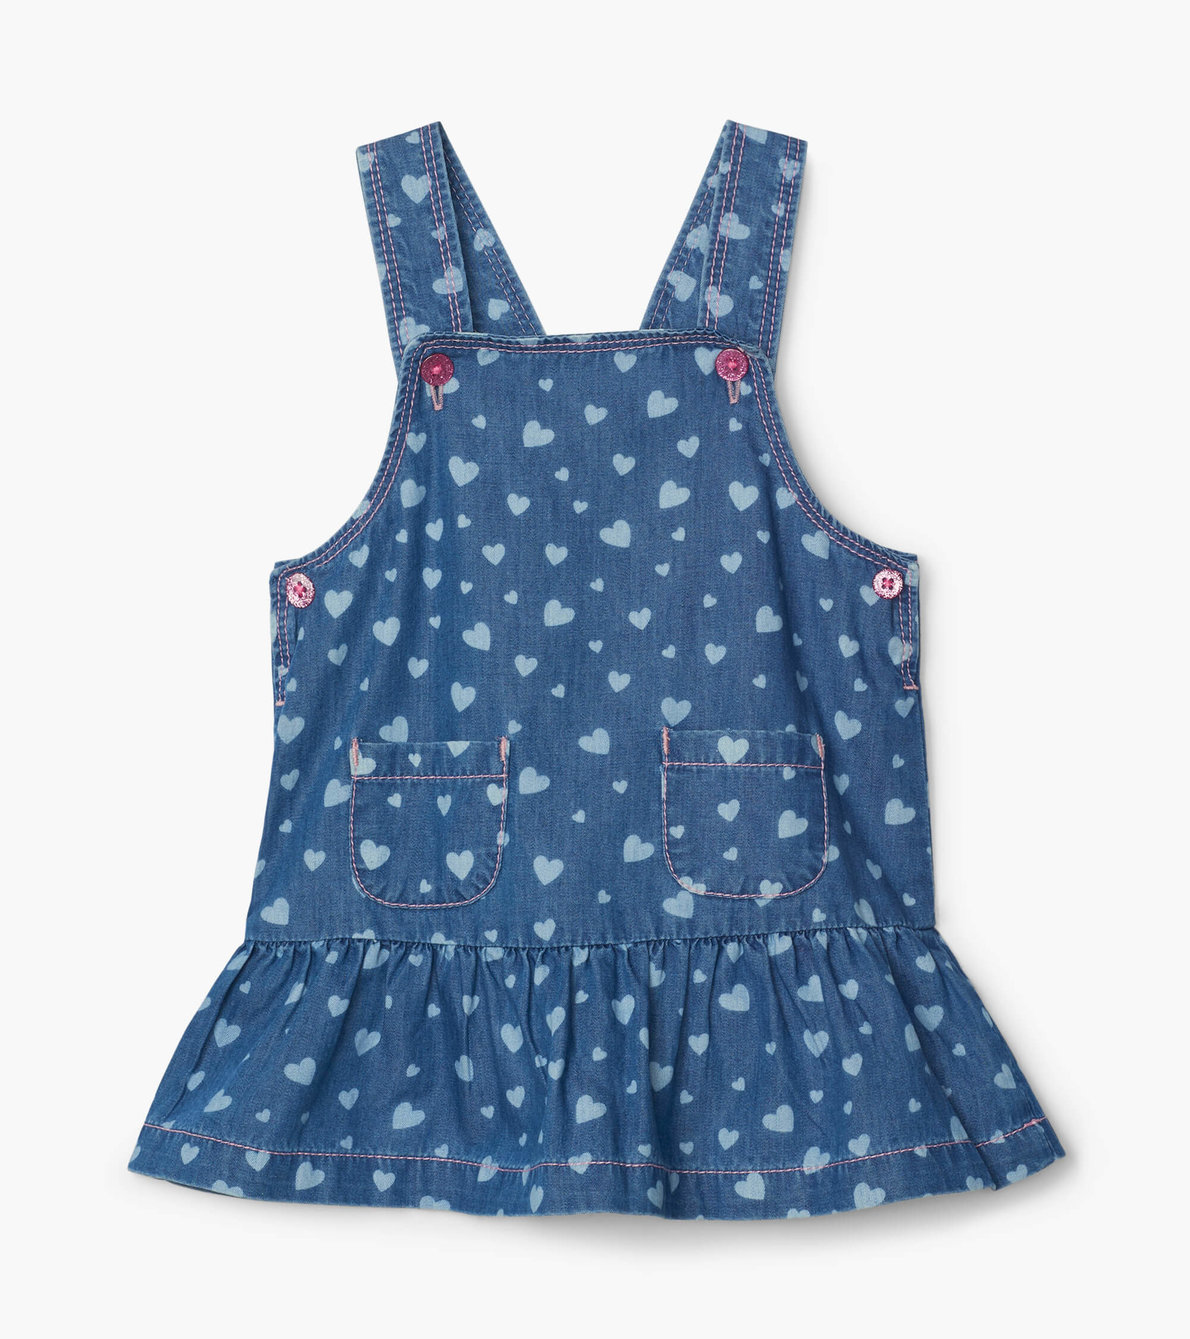 SALE £24.80 Hatley Heart Cluster Baby Flounce Hem Pinafore (was £31.00)